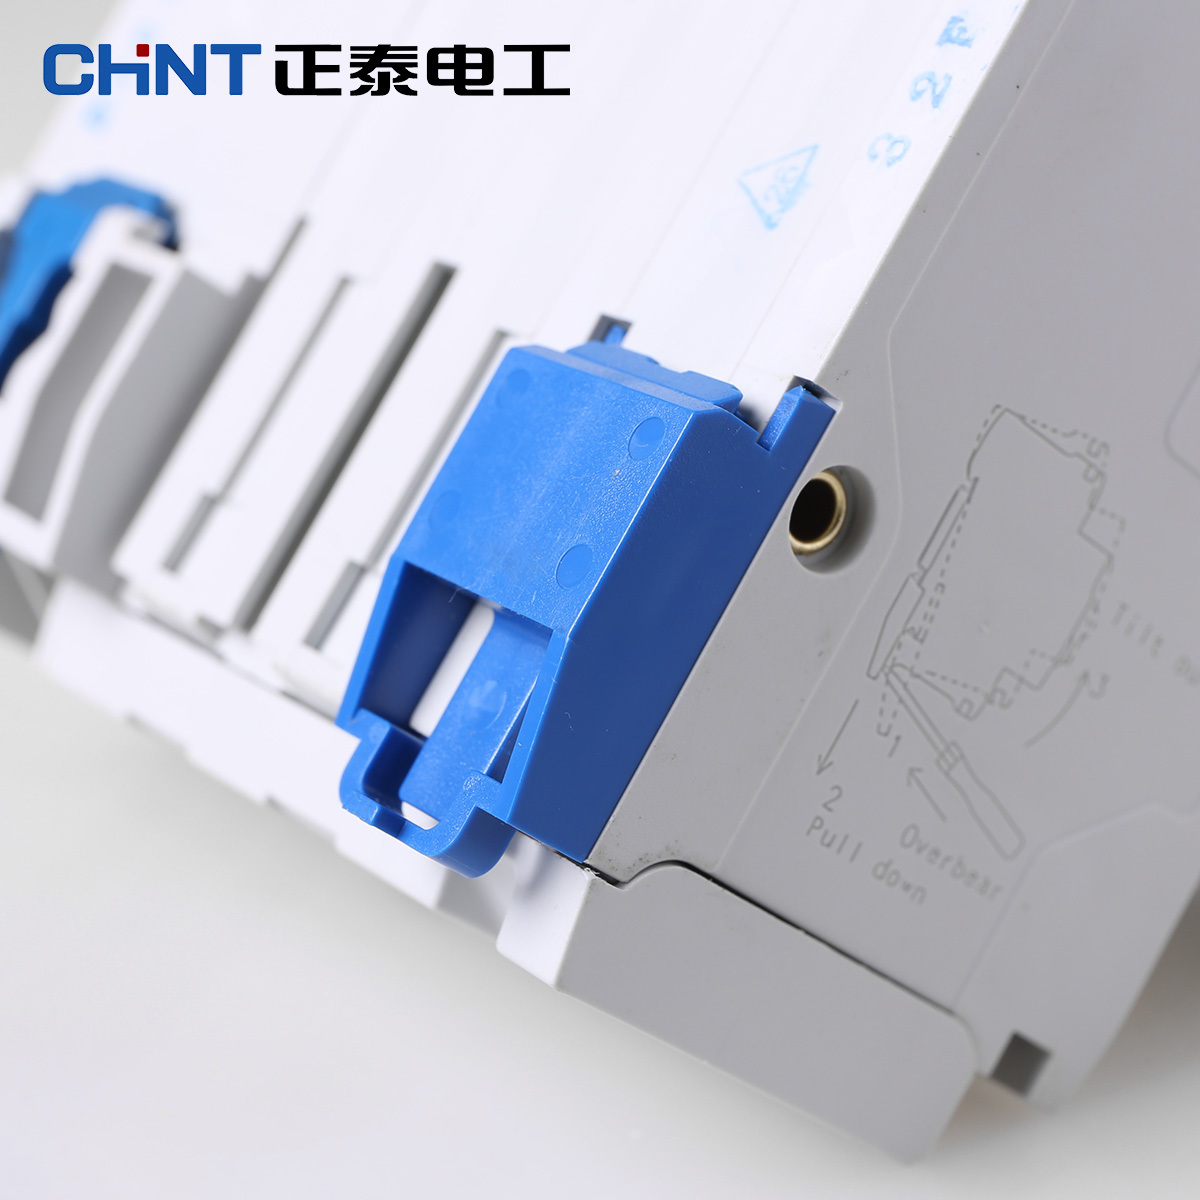 Chnt Chint Leakage Protector Nbe7le 3p N 16a 20a 25a 32a 40a 63a Miniature Circuit Breaker 2p 4p Solar Automatic Reclosing For Photovoltaic System Reconnection Mini Mcb